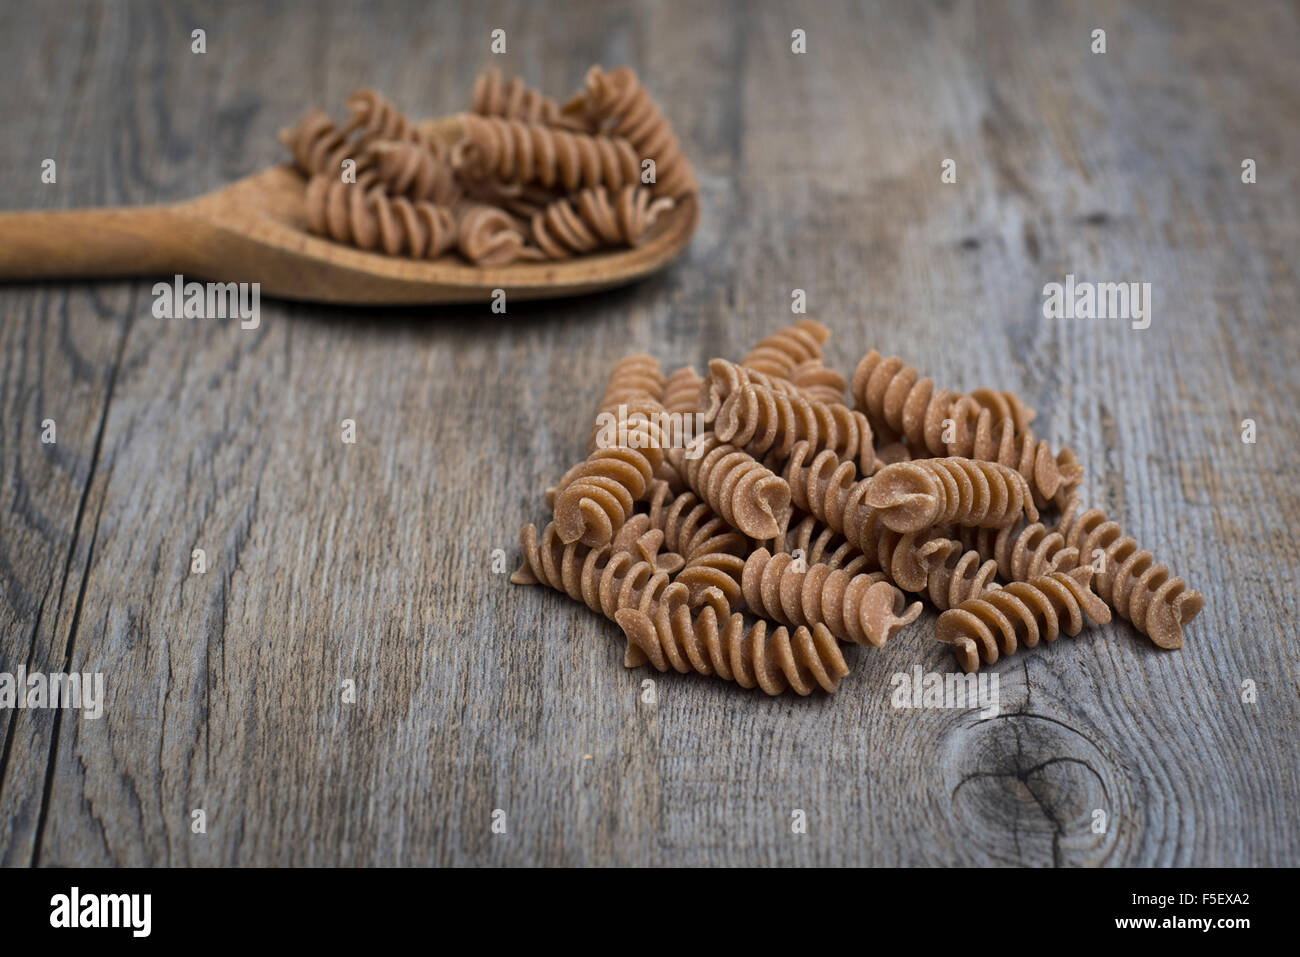 Wholegrain, spelt fusilli pasta with a wooden spoon Stock Photo